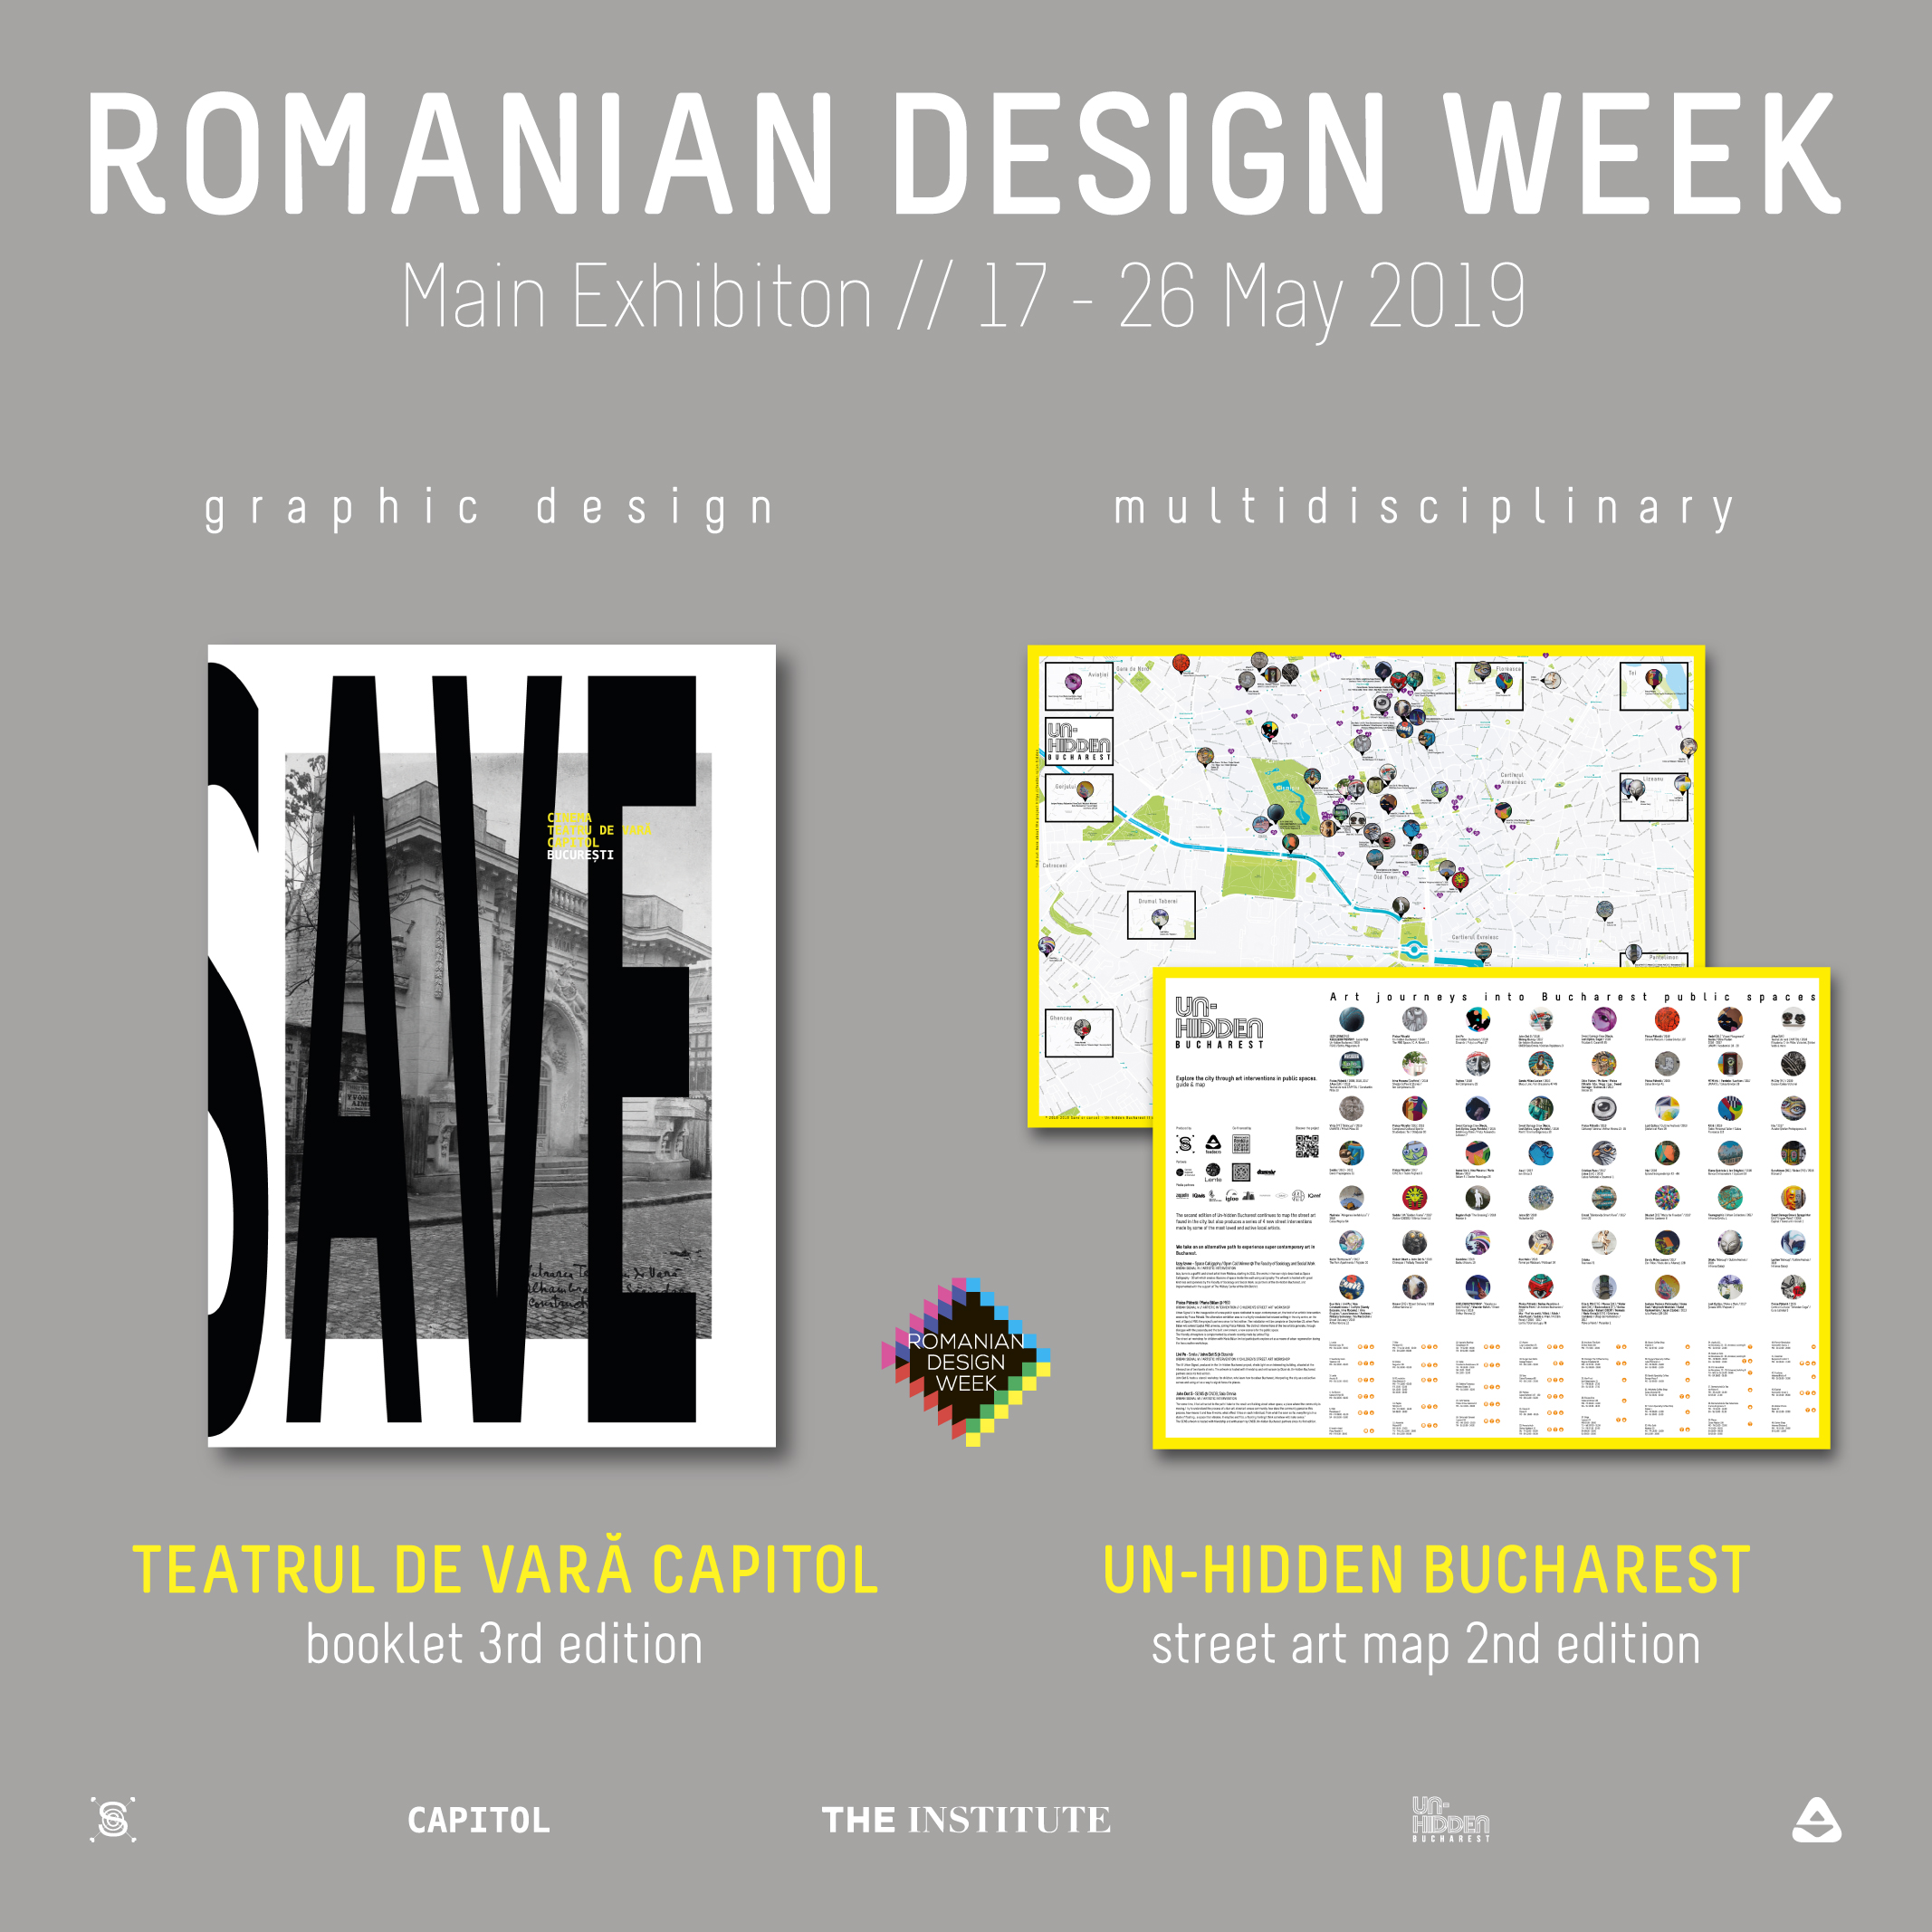 The CAPITOL booklet | Graphic Design | Romanian Design Week 2019